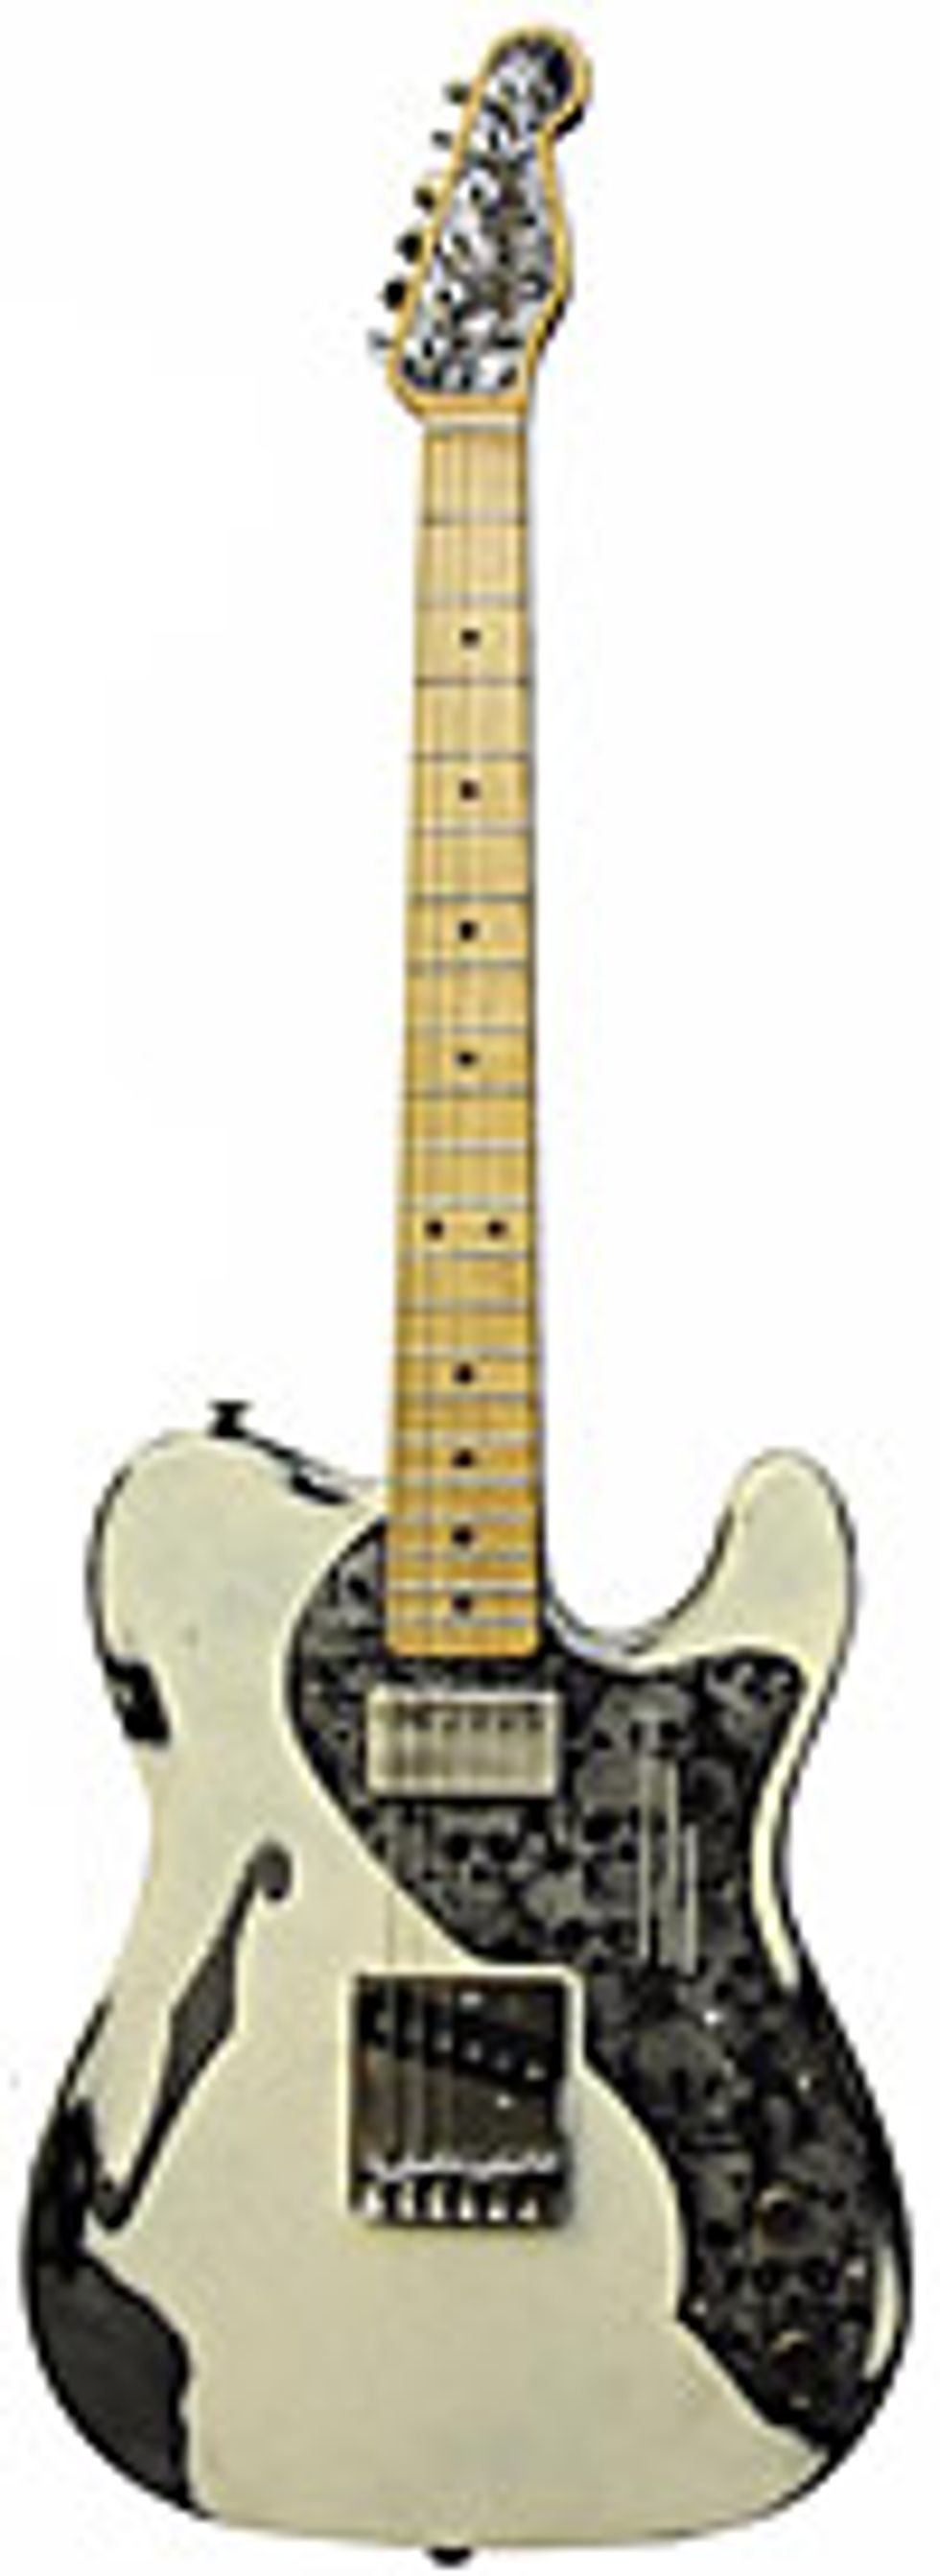 James Trussart Steelcaster Deluxe